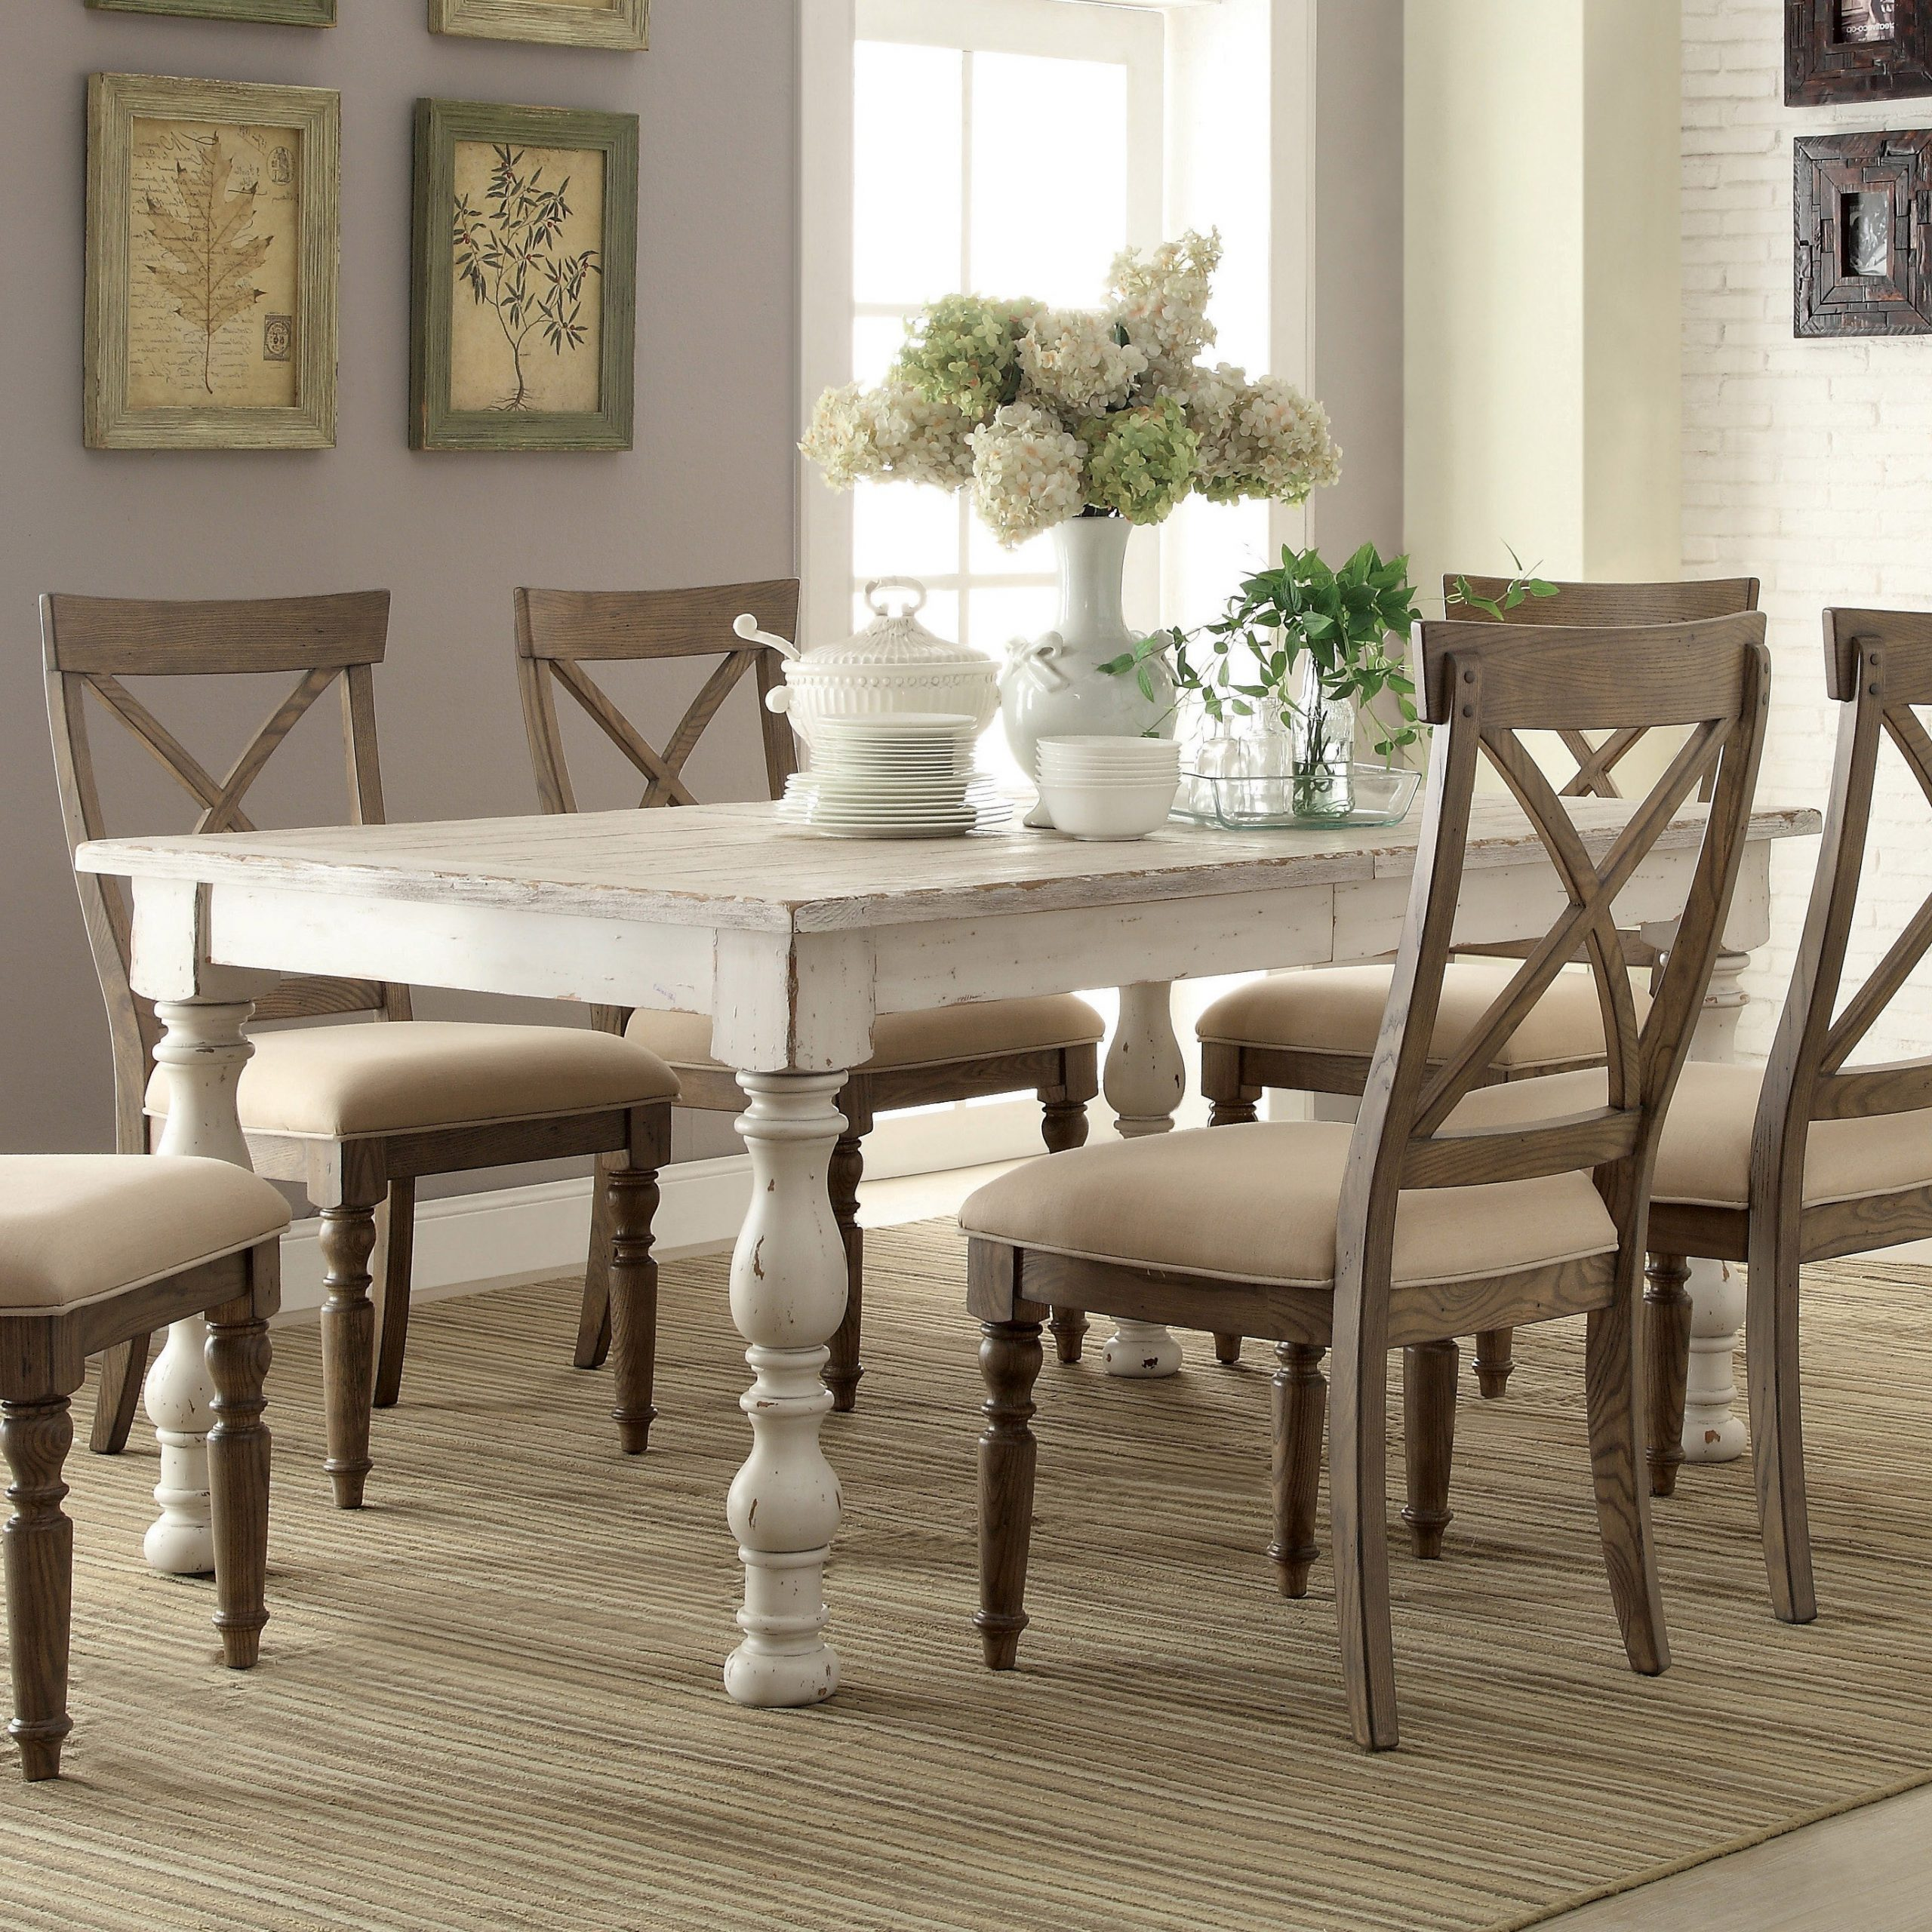 2019 Bowry Reclaimed Wood Dining Table Pottery Barn Within pertaining to Bowry Reclaimed Wood Dining Tables